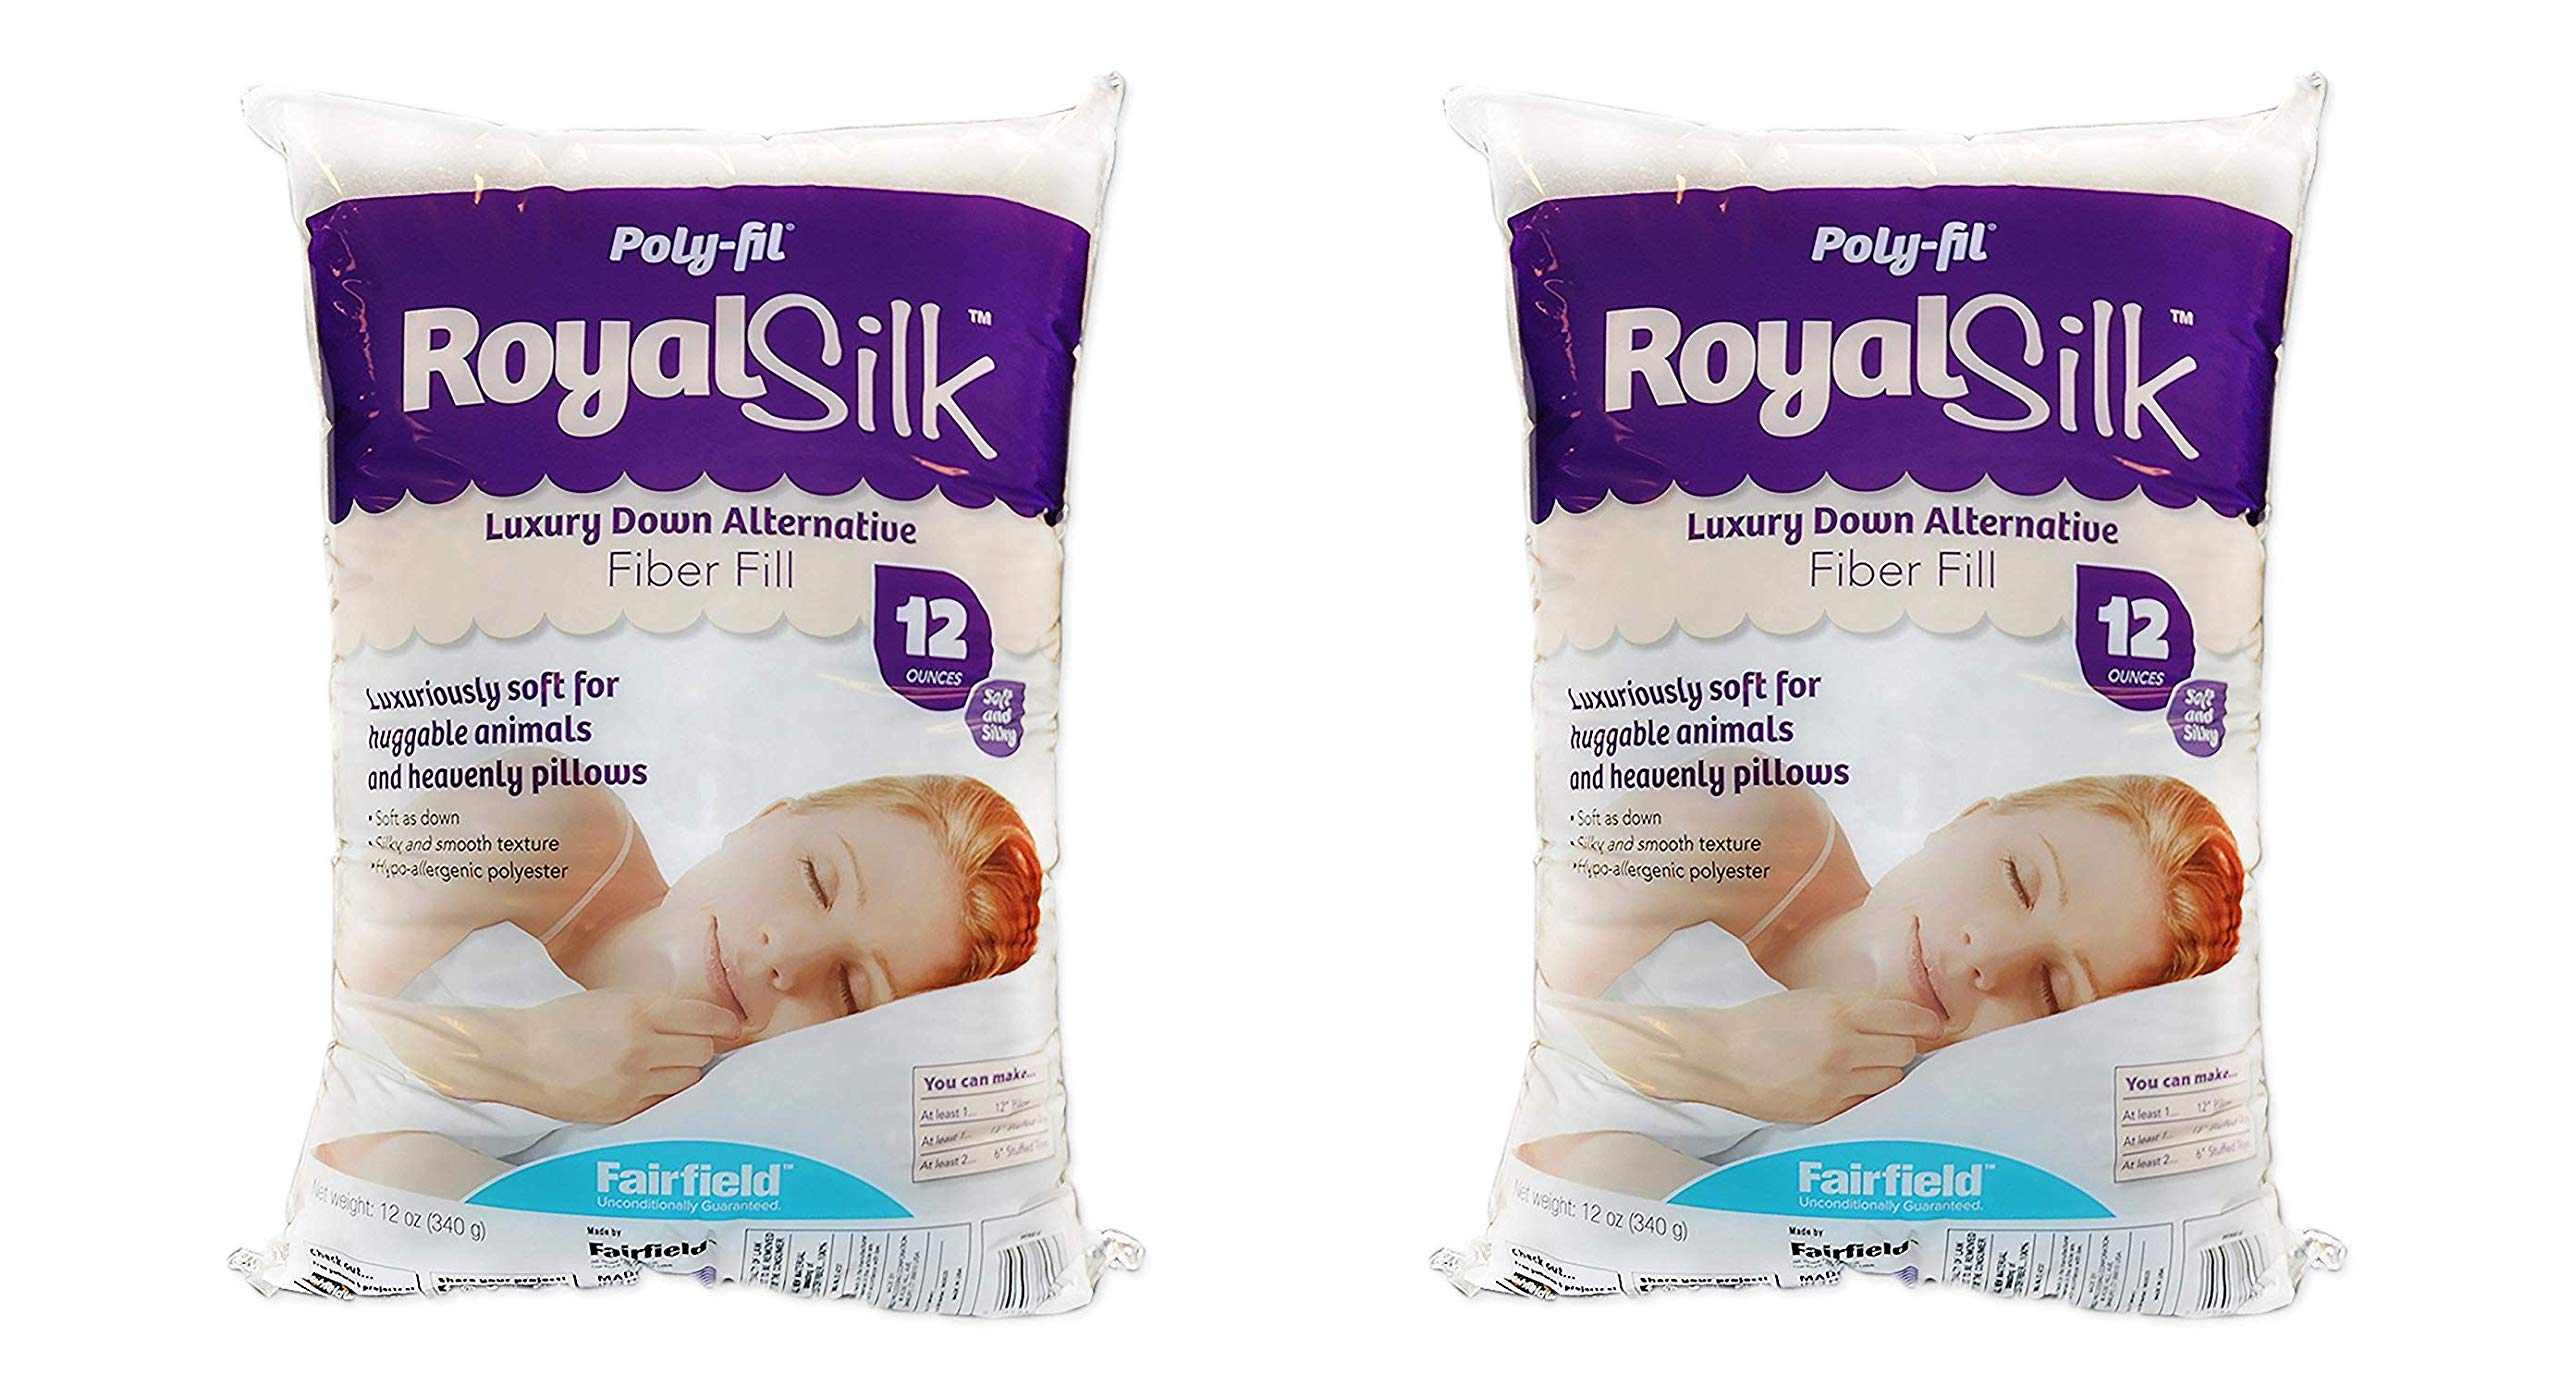 Fairfield PFRS12 Poly-Fil Royal Silk Fiber Fill Bag, 12 oz, White (Twо Pаck) by Fairfield